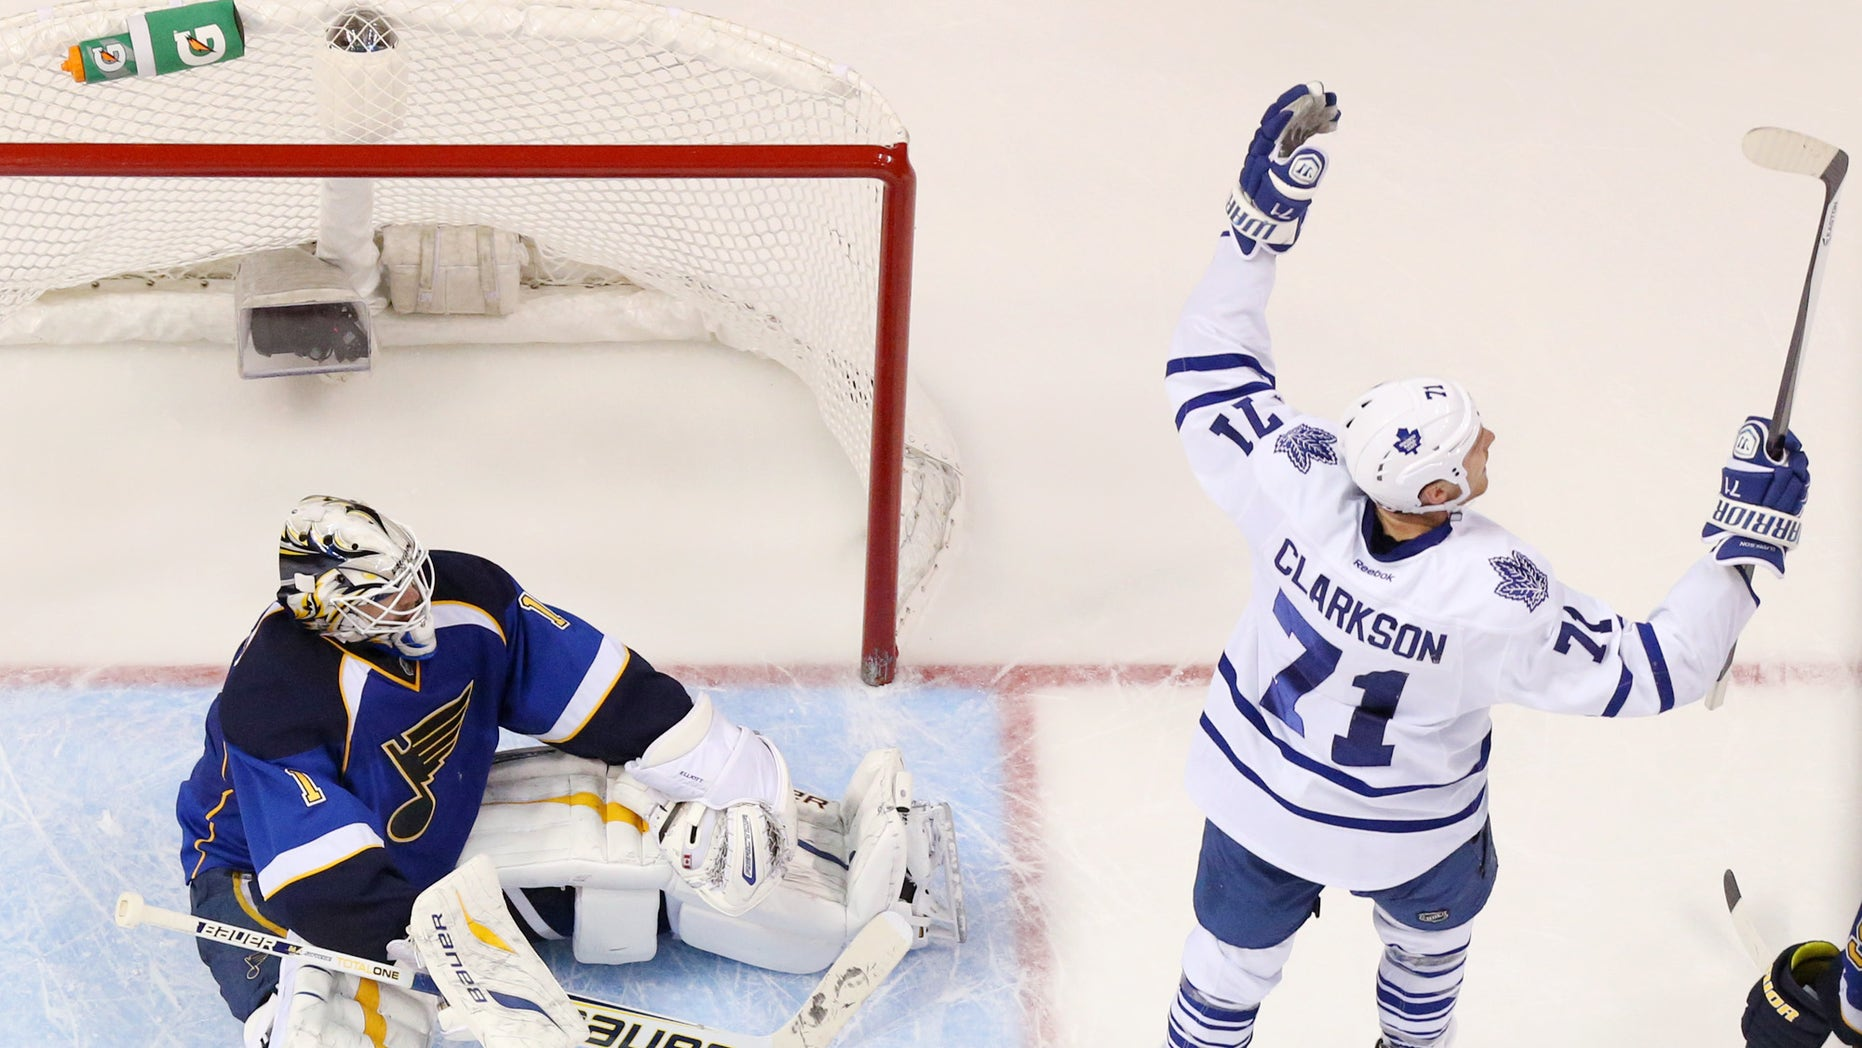 Toronto Maple Leafs right wing David Clarkson (right) celebrates after teammate James van Riemsdyk scored on a deflection past St. Louis Blues goaltender Brian Elliott (left) in third period action during a game between the St. Louis Blues and the Toronto Maple Leafs on Thursday Dec. 12 2013, in St. Louis. (AP Photo/St. Louis Post-Dispatch, Chris Lee)